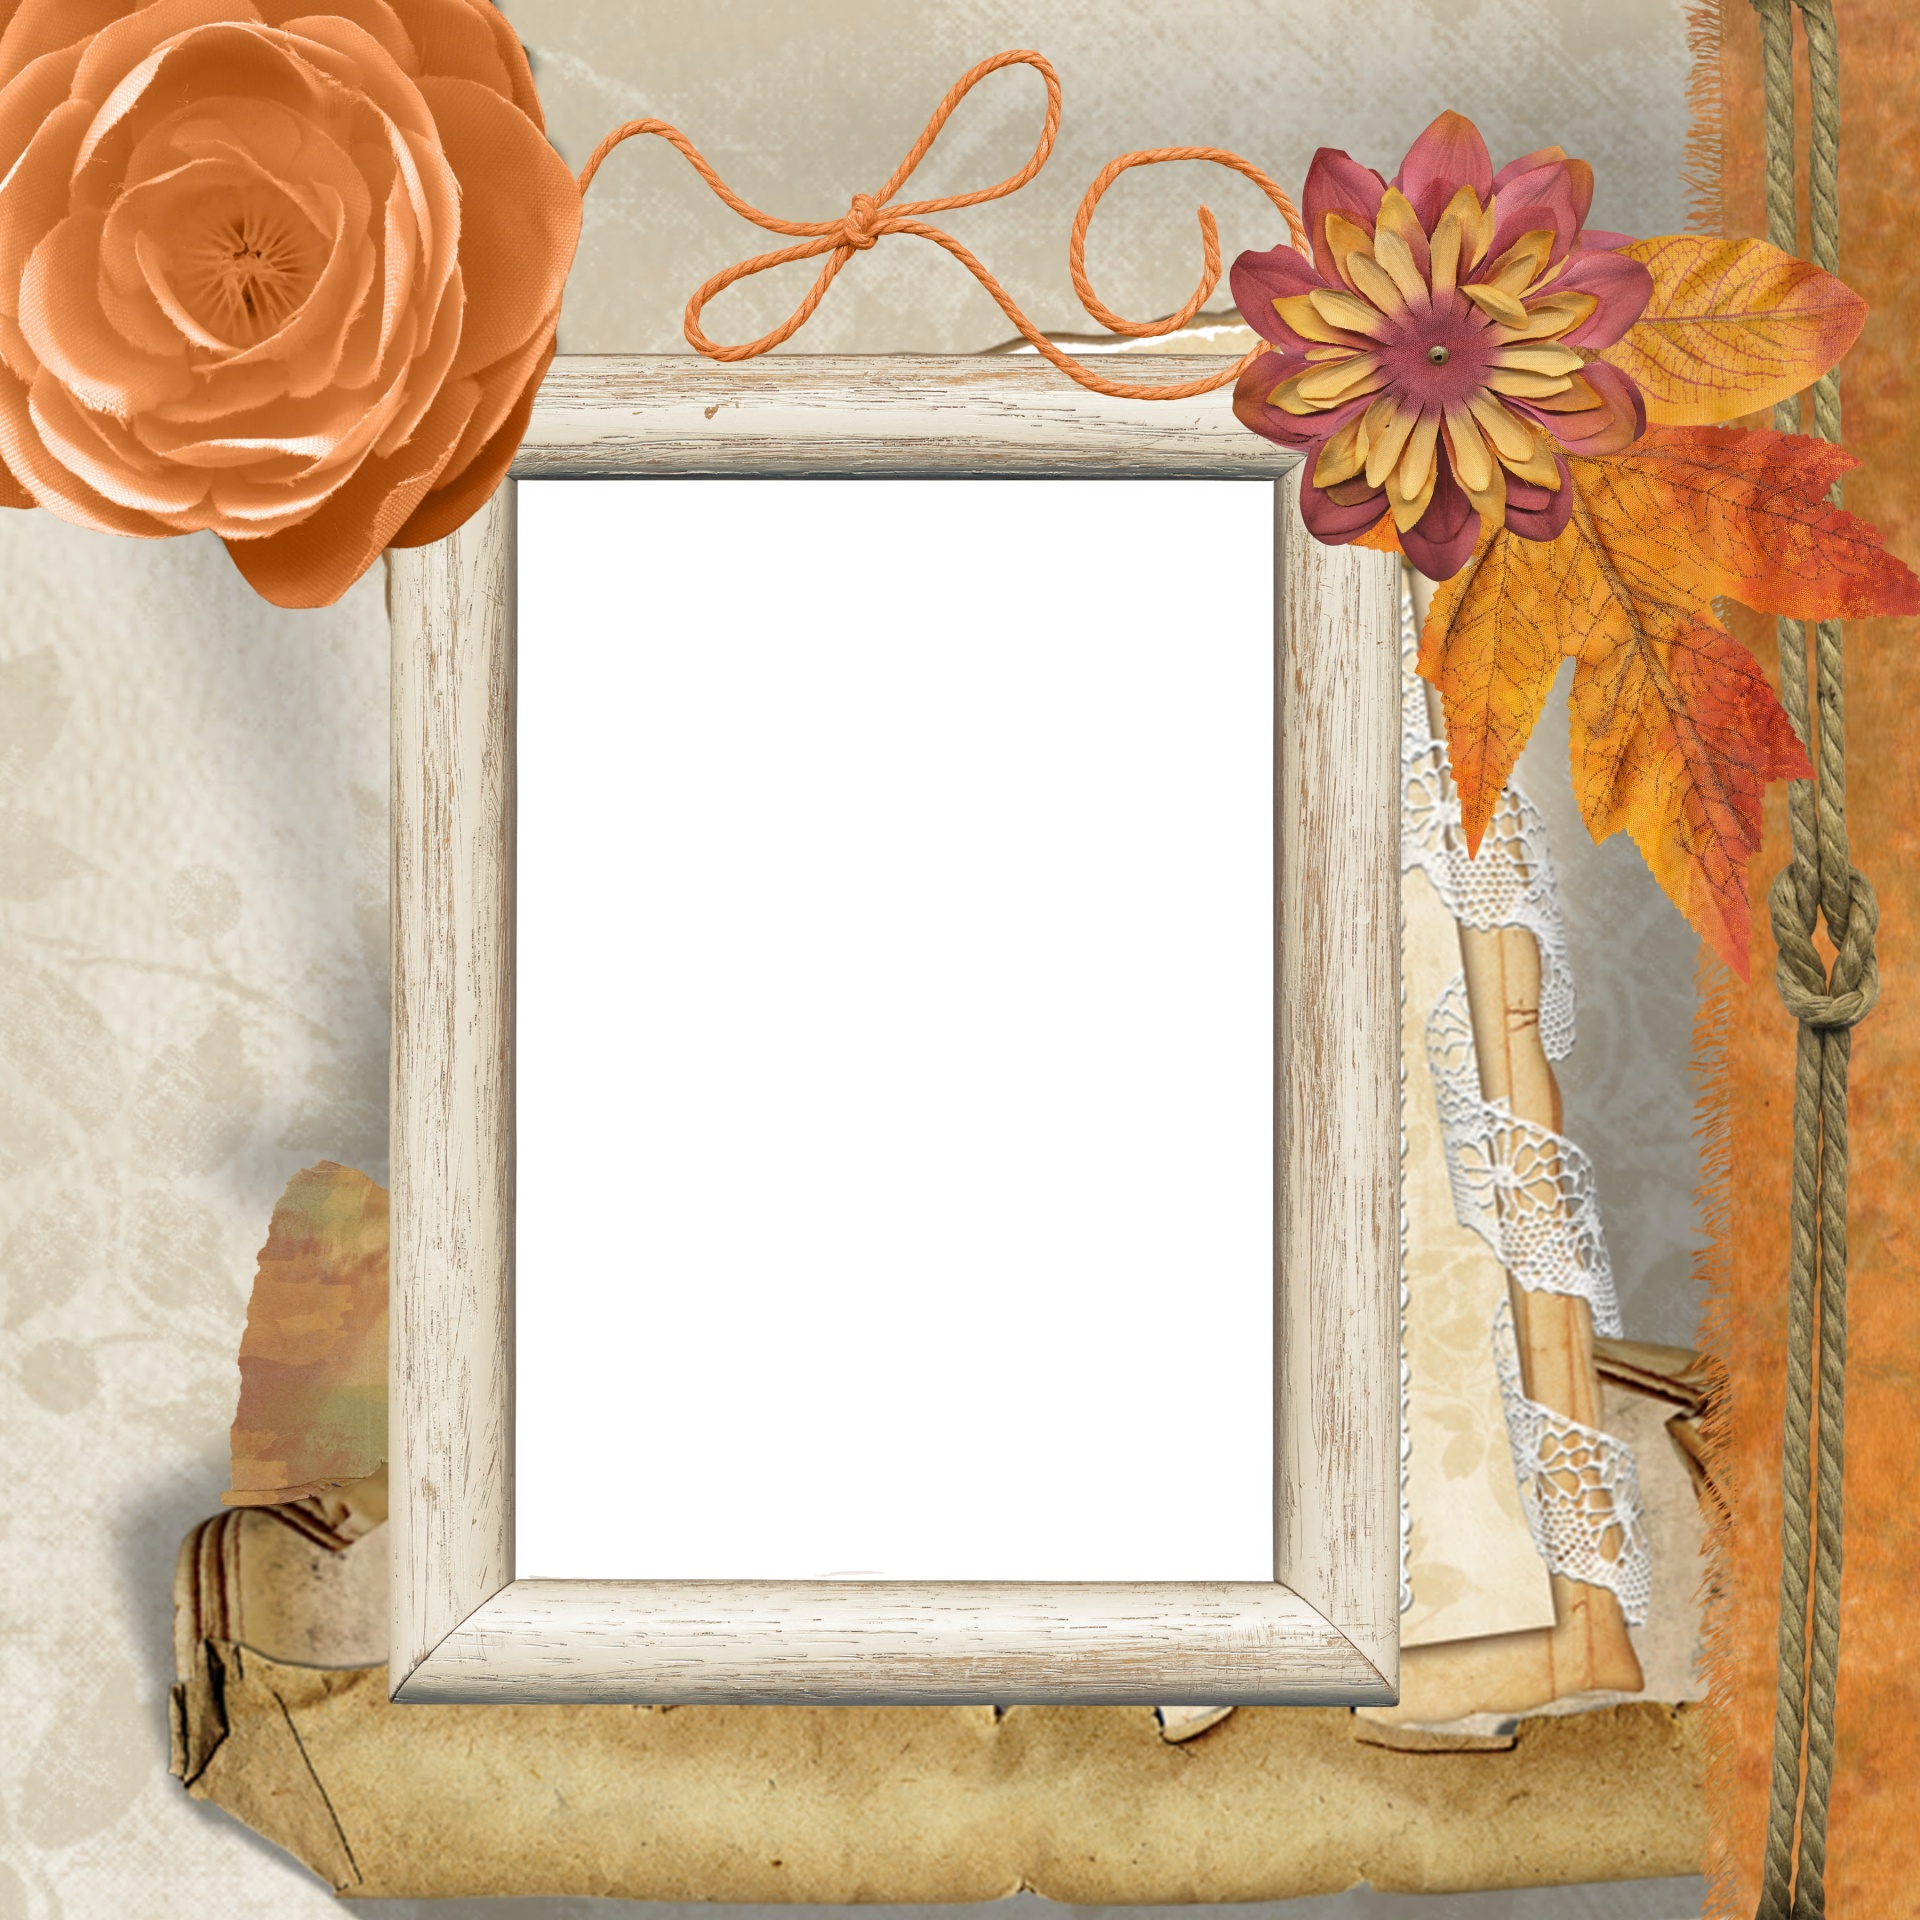 background-scrapbook-vintage-frame